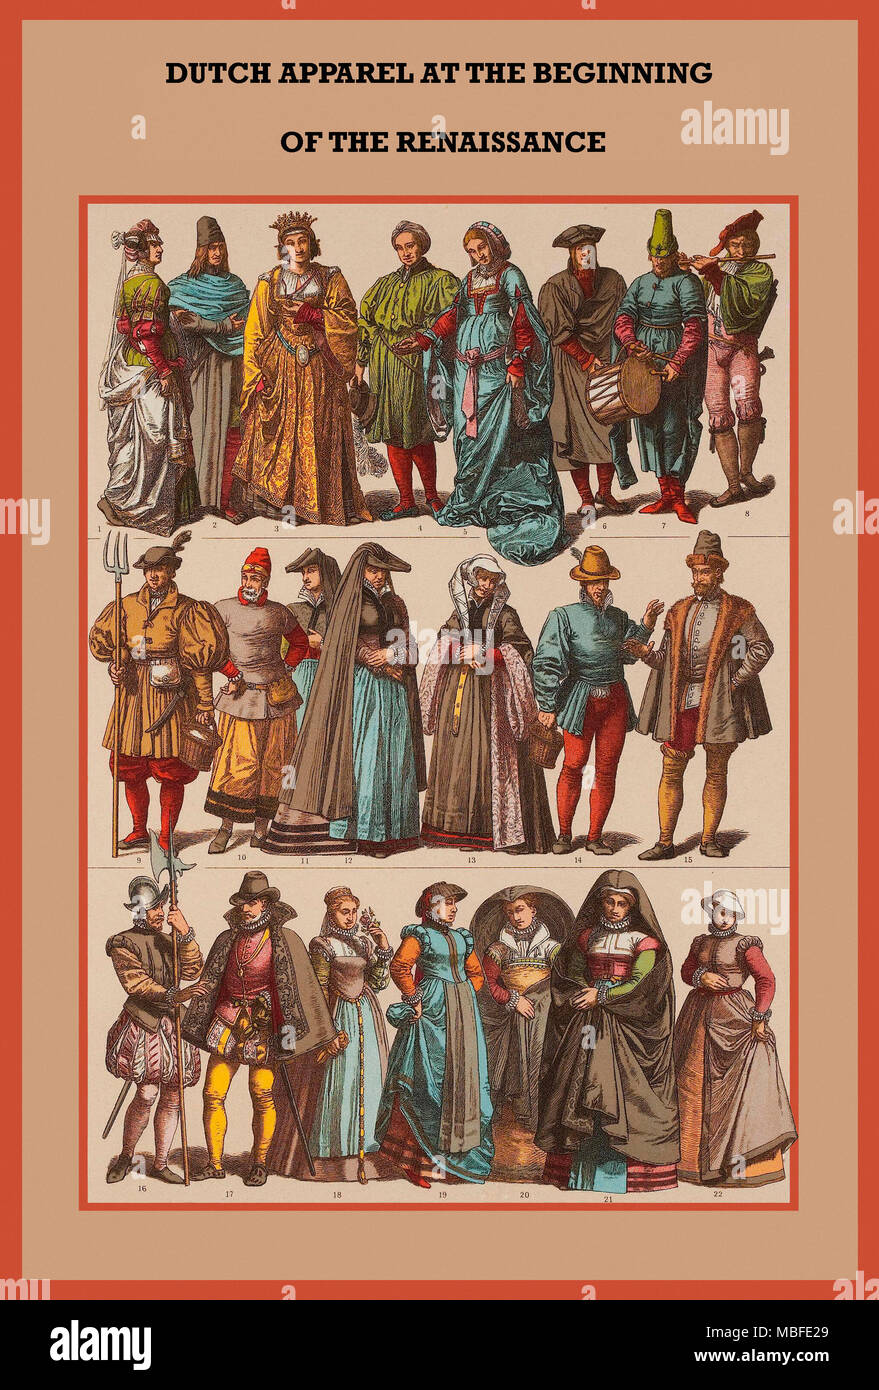 Dutch Apparel at the beginning of the Renaissance - Stock Image